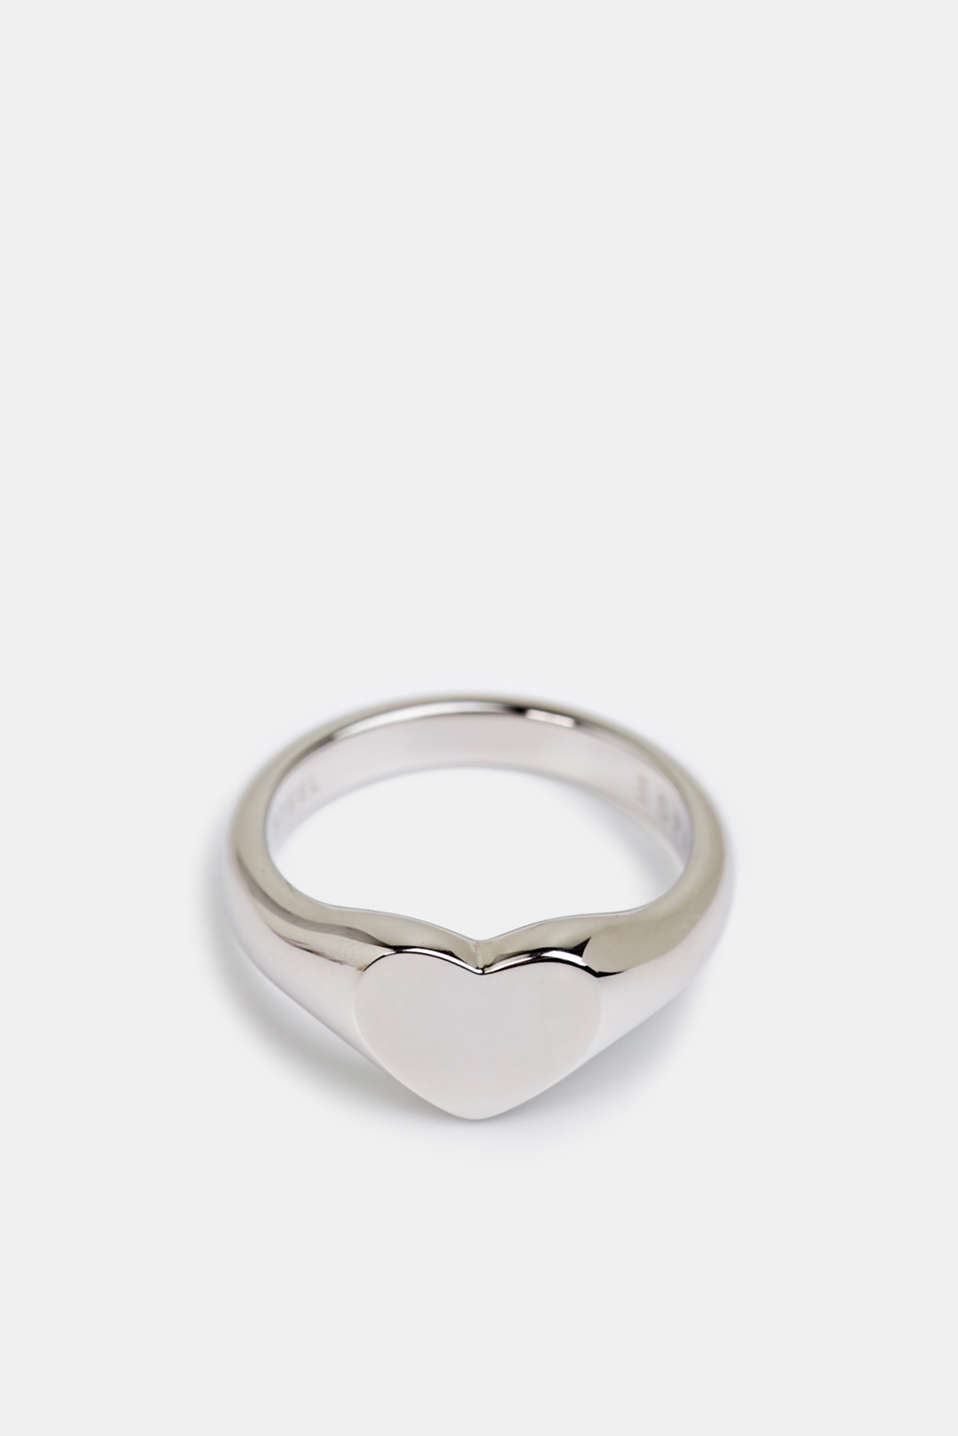 Stainless steel heart ring, LCSILVER, detail image number 0